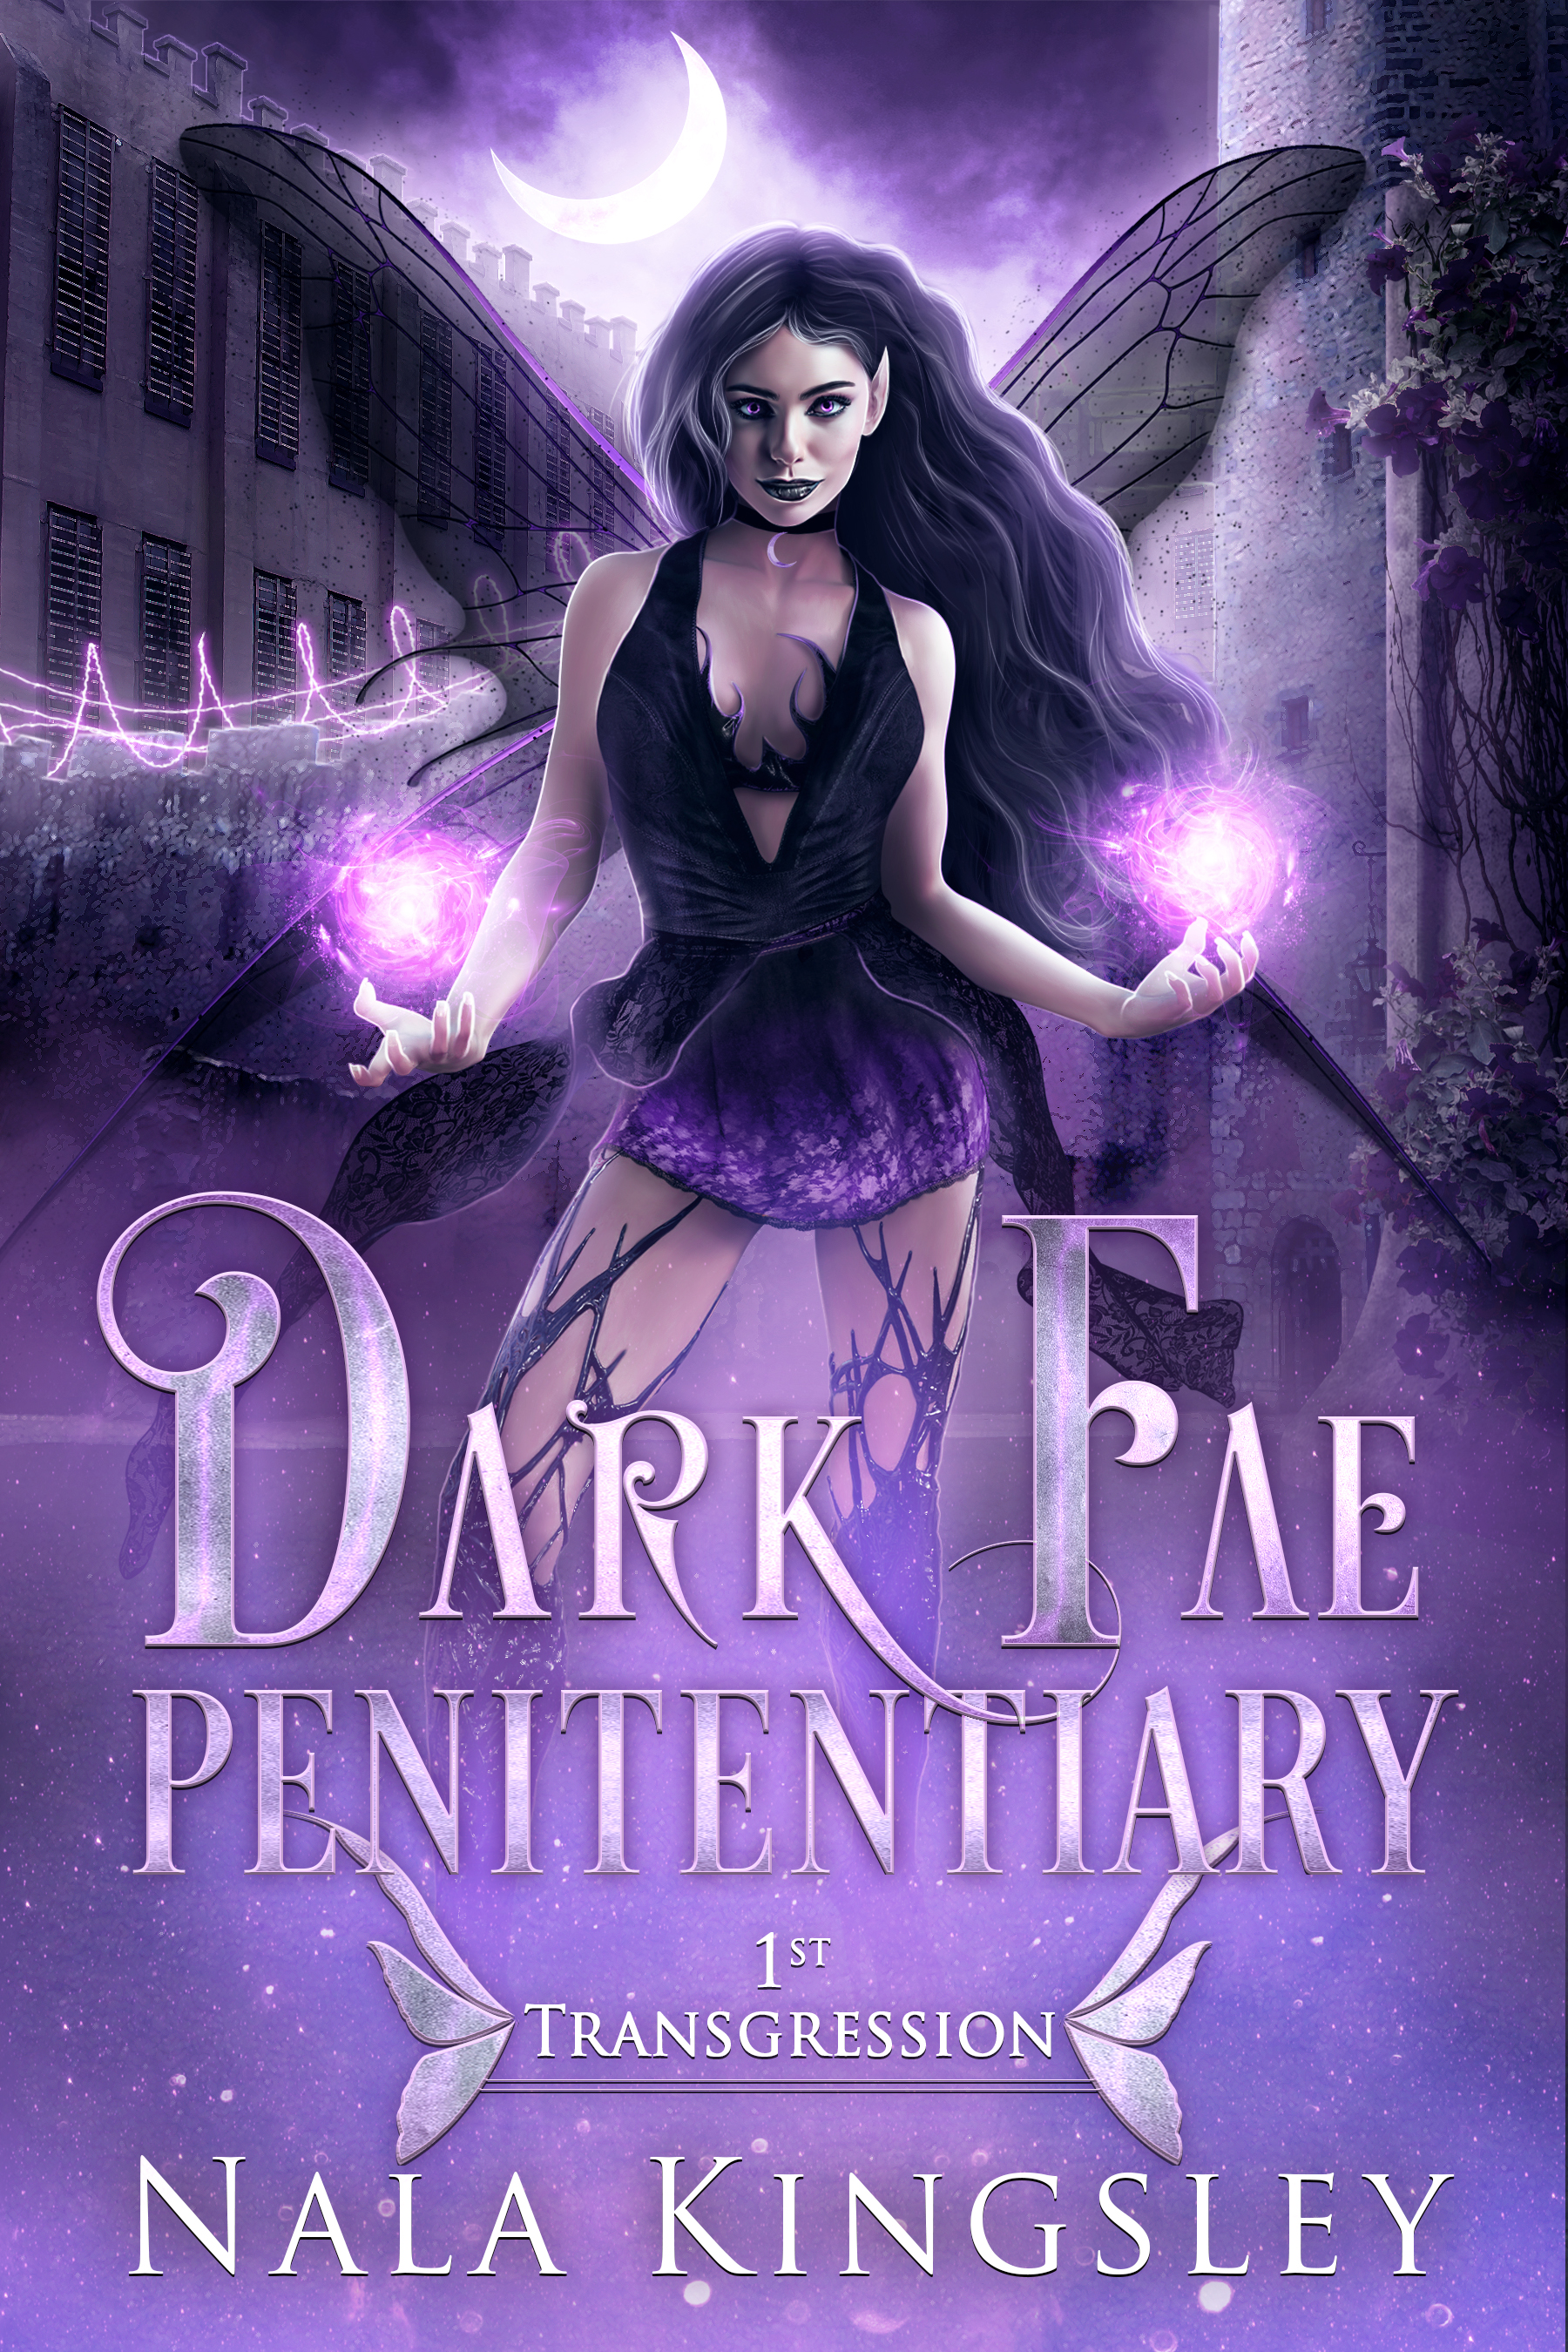 Dark Fae Penitentiary Book 1